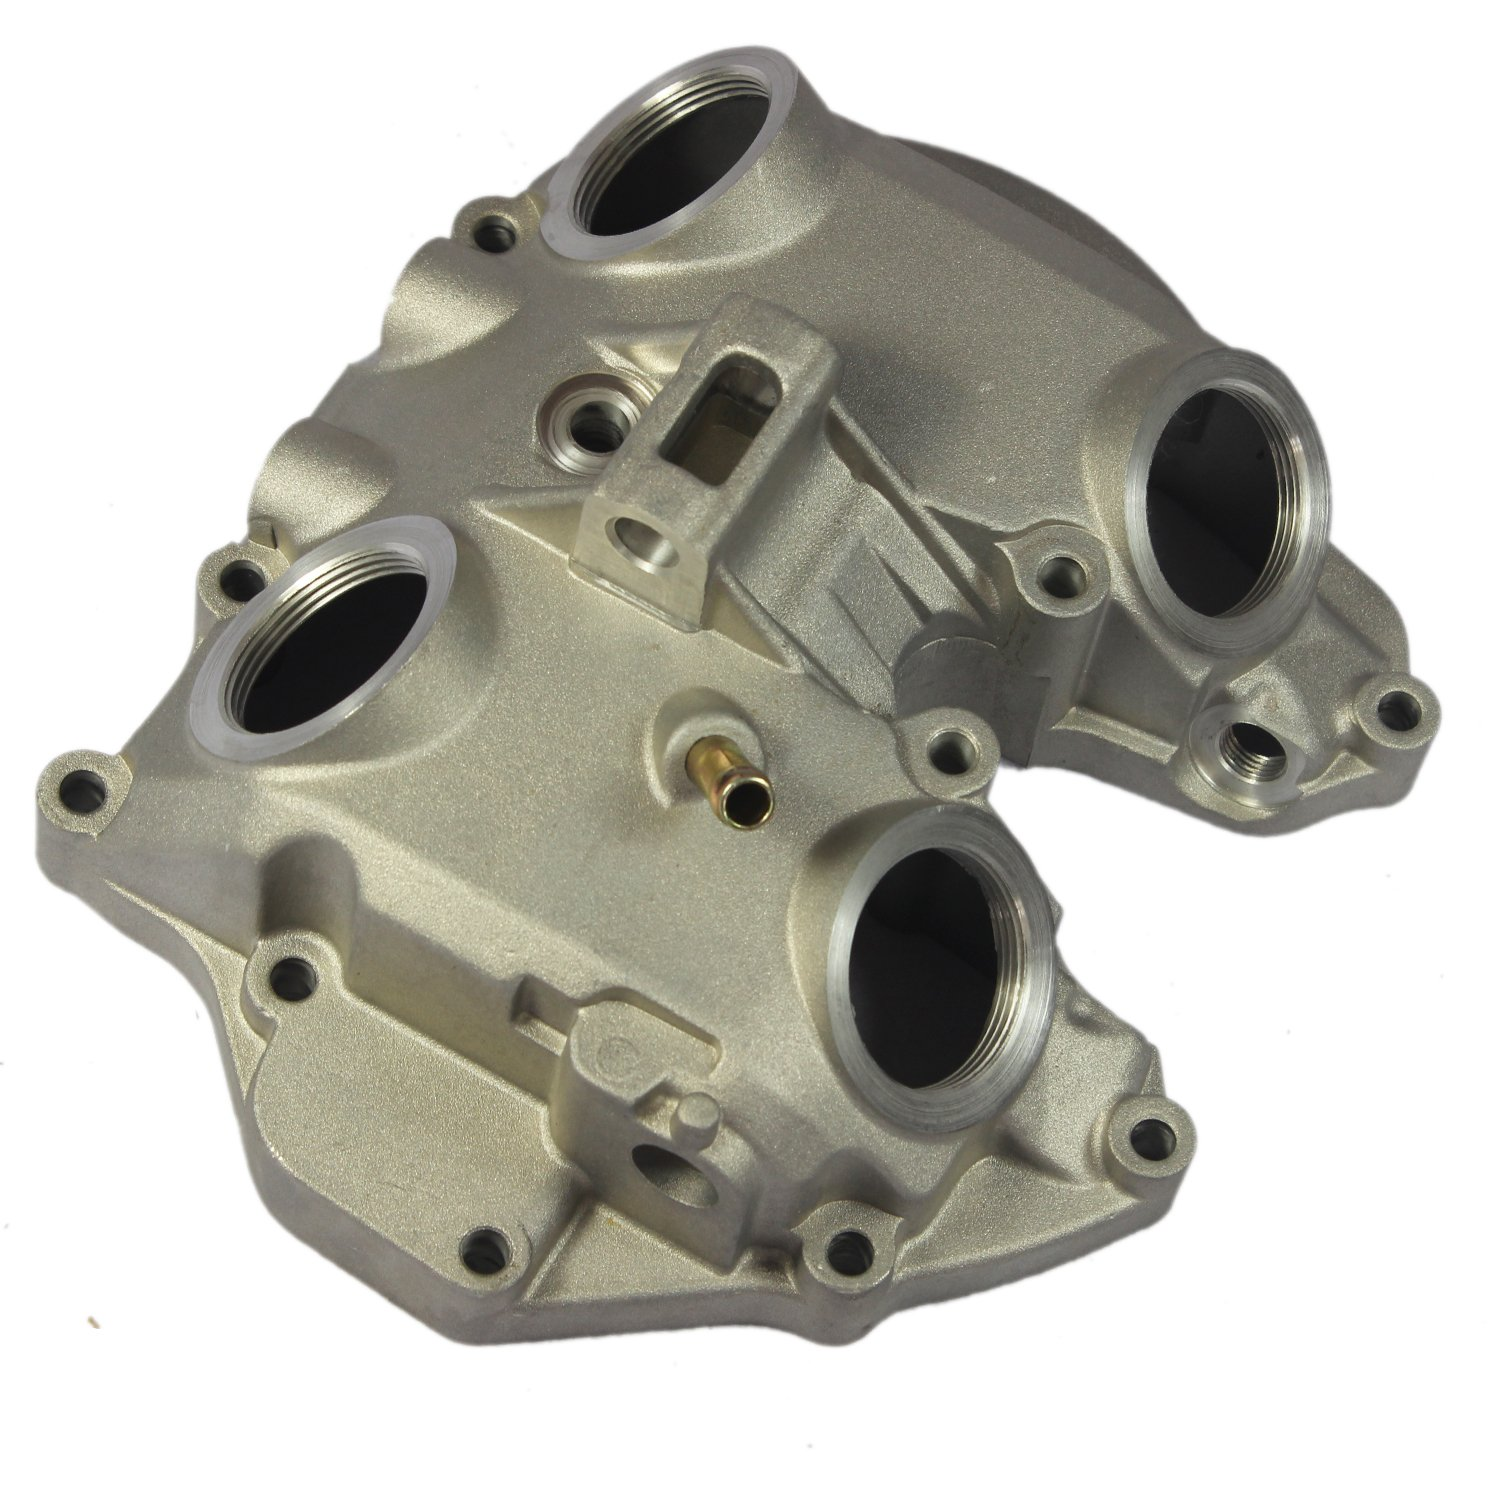 JDMSPEED New Cylinder Head With Spark Plug for 1999-2008 Honda Sportrax TRX400EX